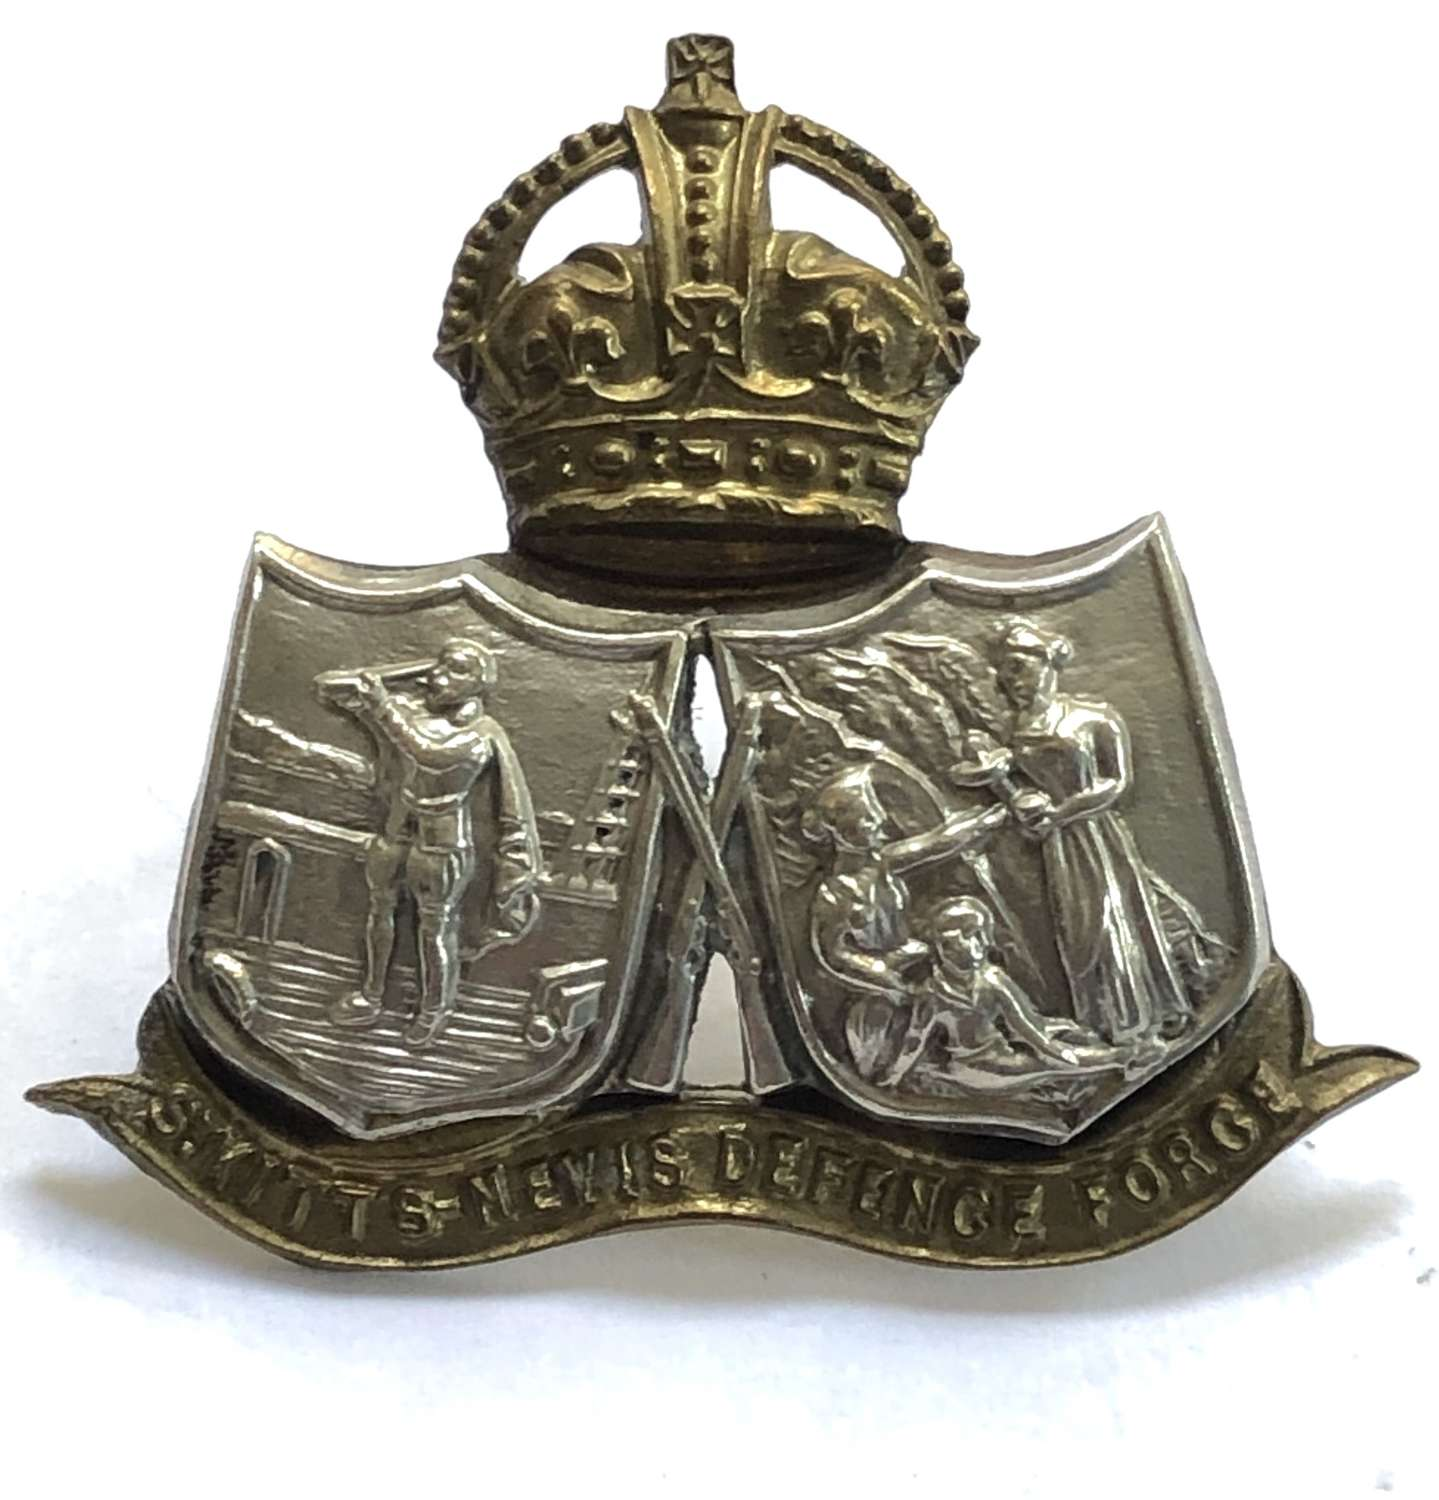 St. Kitts Nevis Defence Force scarce OR's bi-metal cap badge